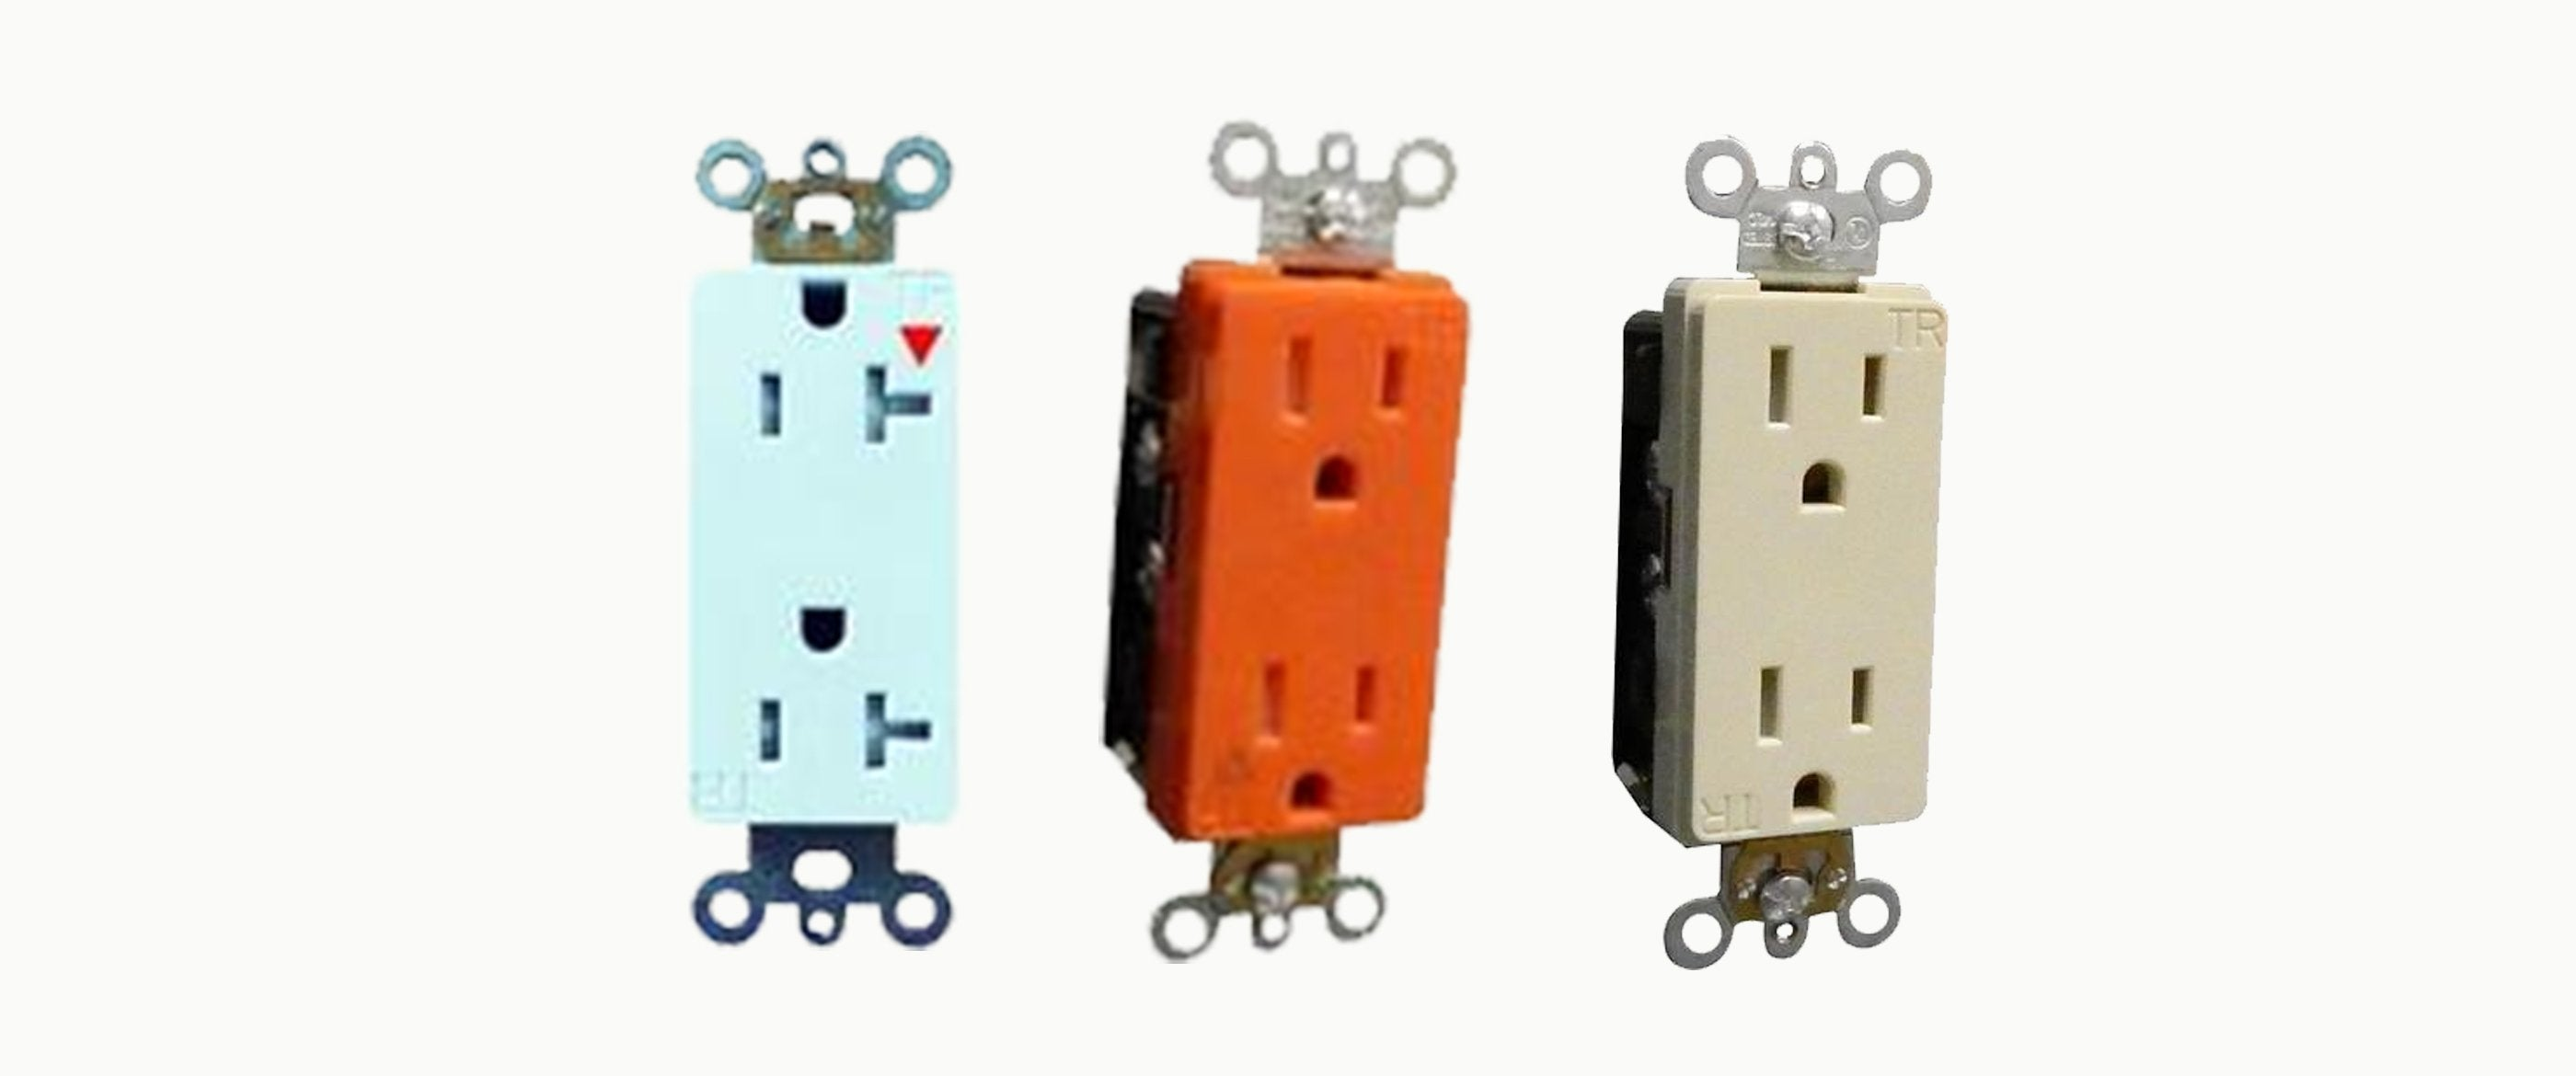 Electrical receptacles and electrical switches | Warehouse ... on